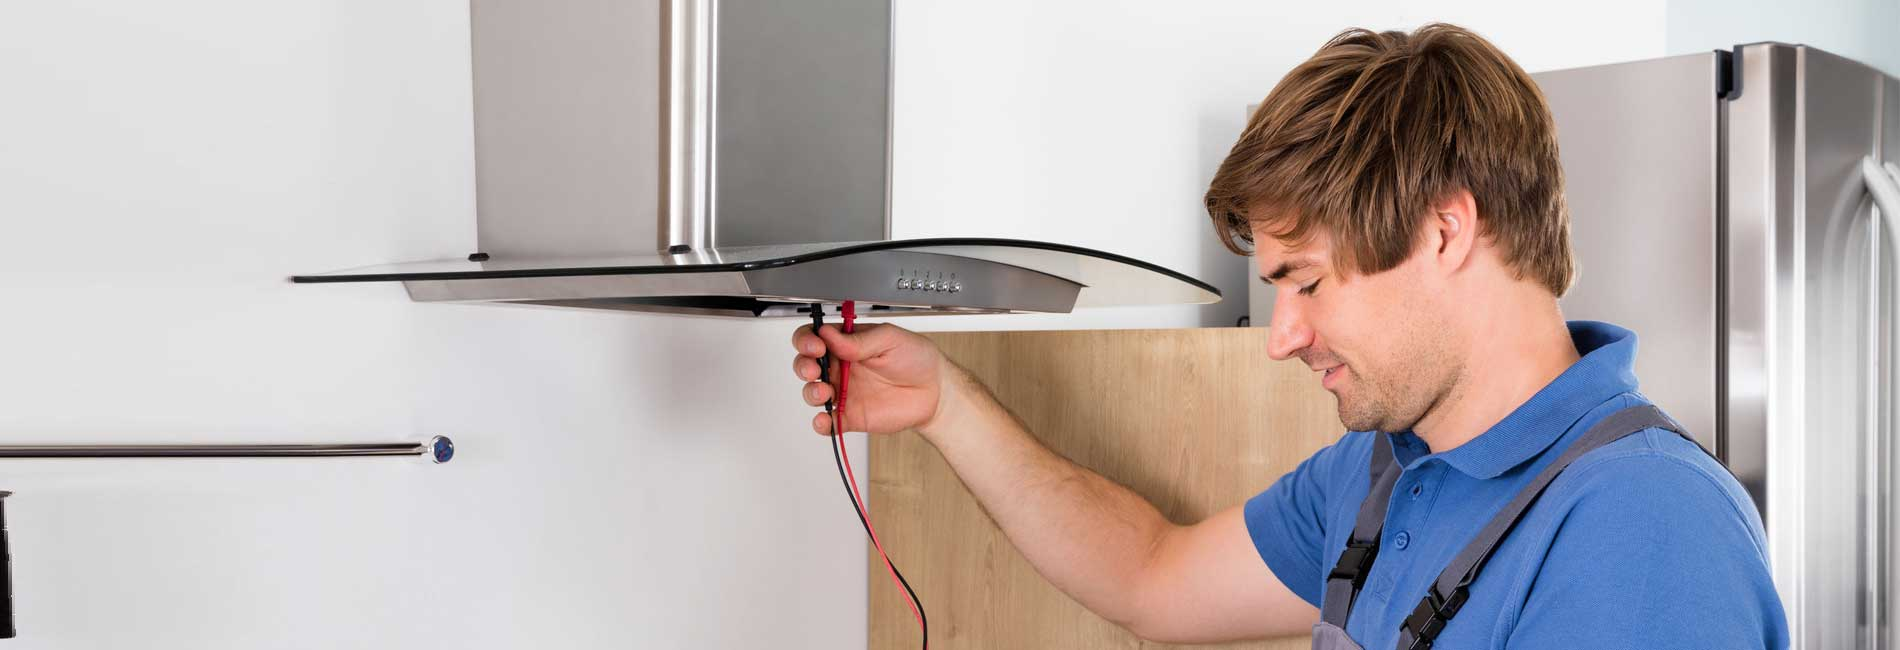 Whirlpool Chimney Service in Alwarthirunagar